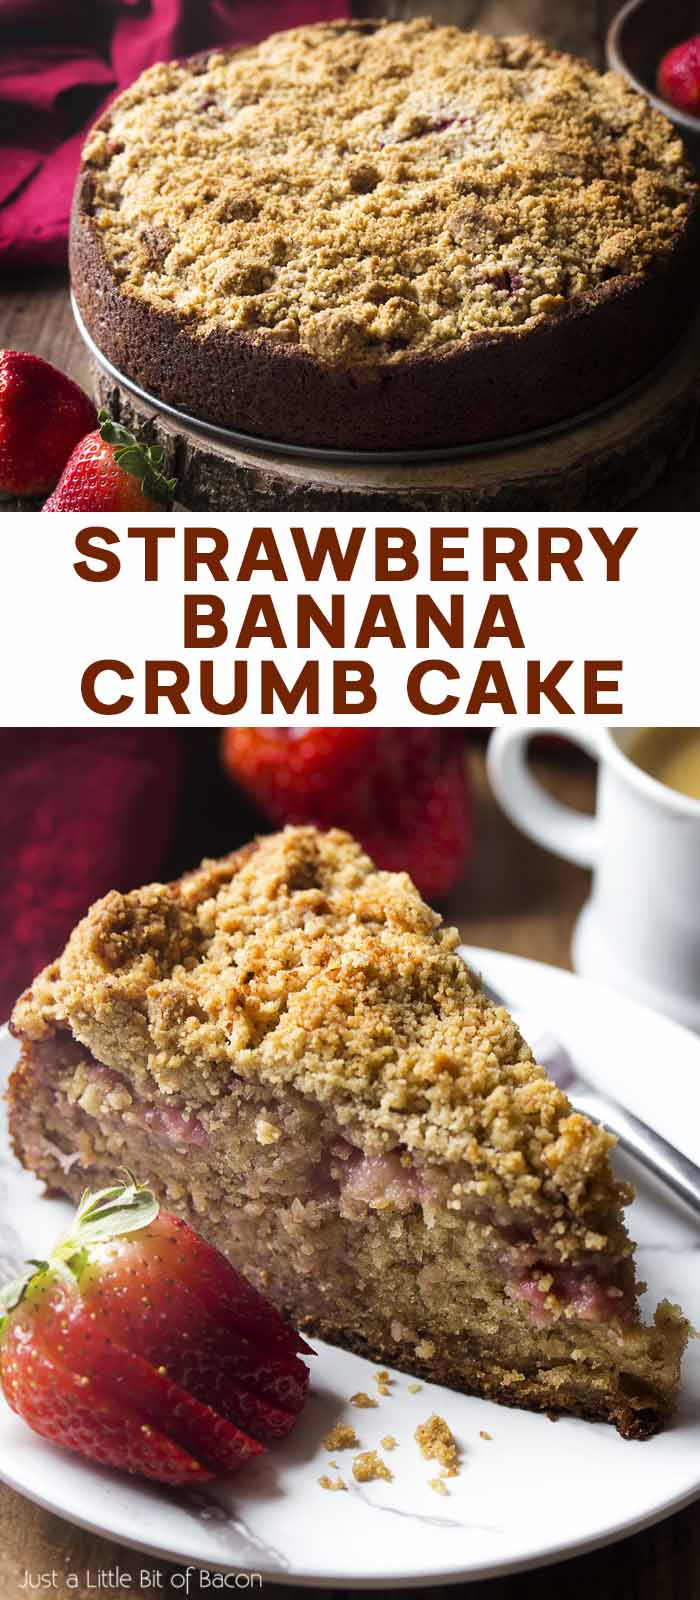 A whole coffee cake and a slice with text overlay - Strawberry Banana Crumb Cake.